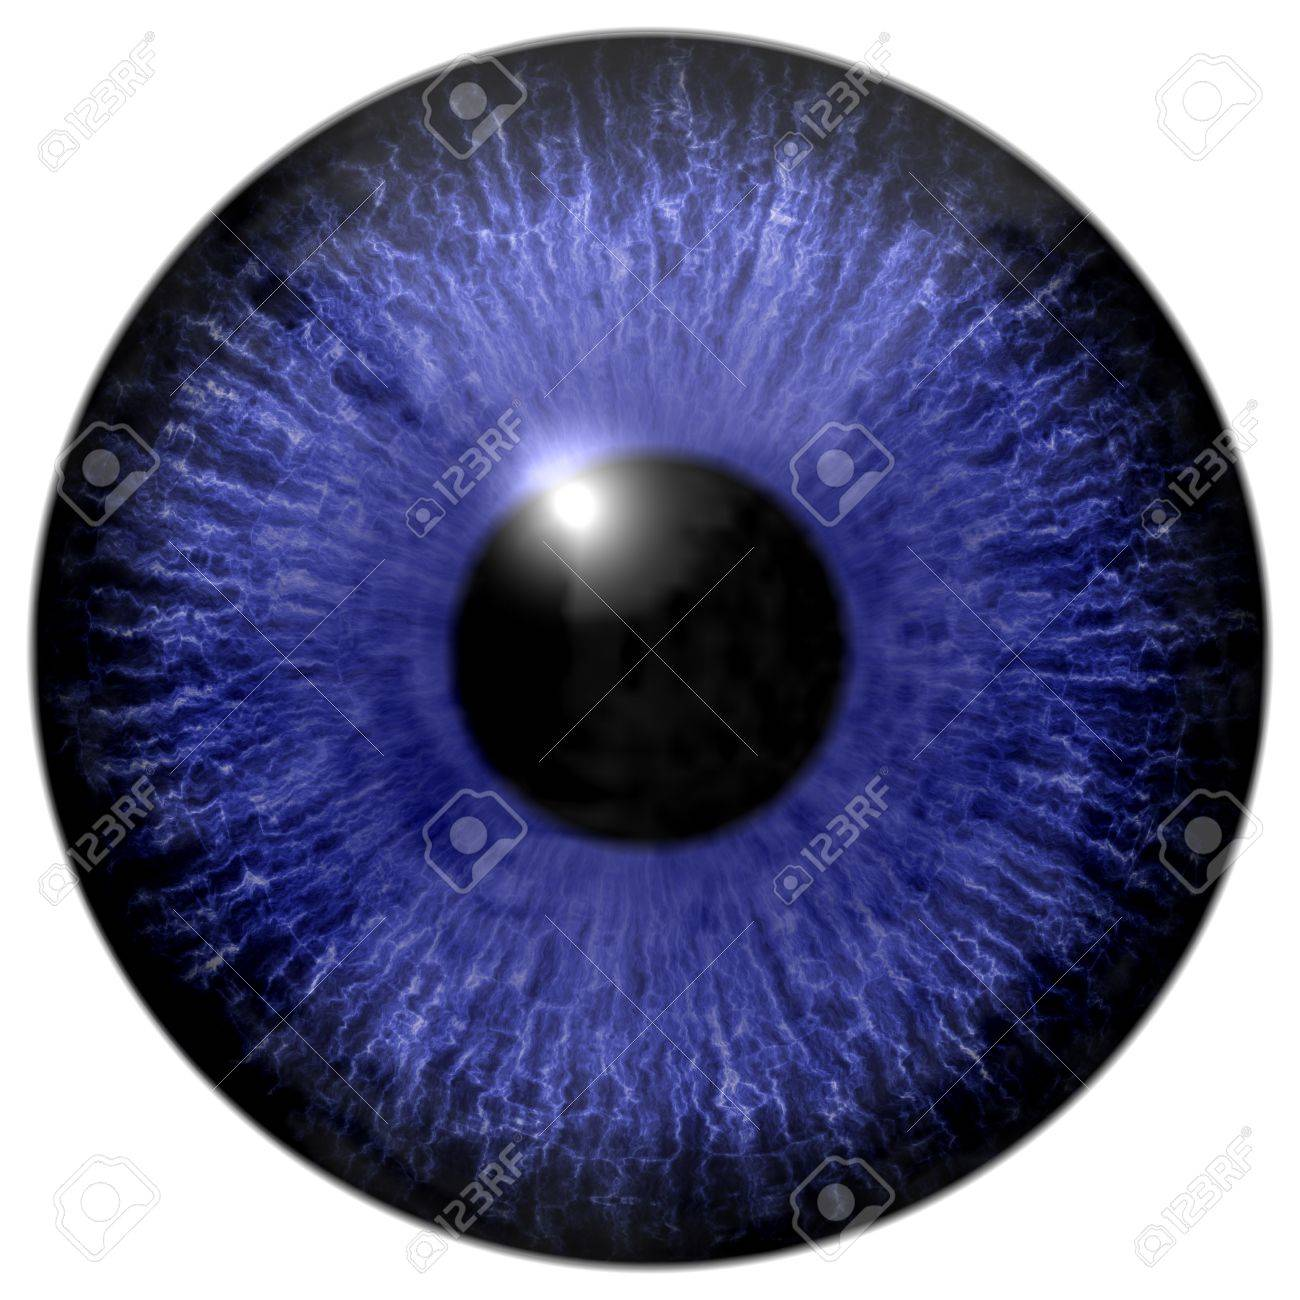 Detail of eye with blue colored iris white veins and black pupil stock photo